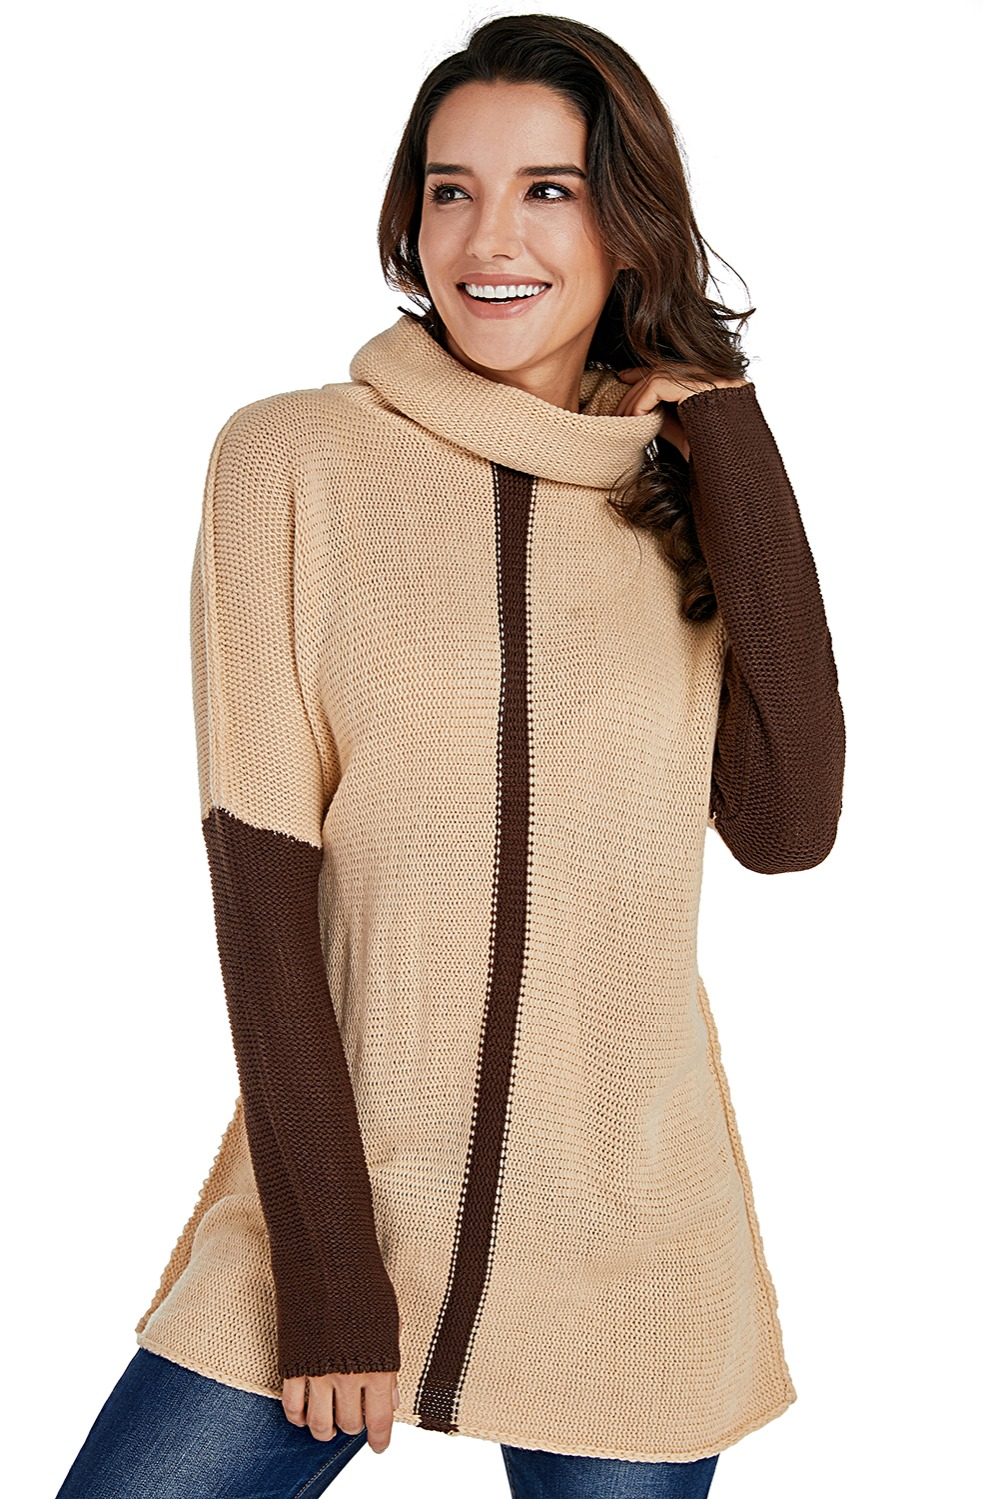 1d838e1b8f Brown Apricot Individual Cowl Neck Pullover Sweater Women Long Sleeve  Patchwork Thumb Hole Sweaters Knitting Casual Long Sweater-in Pullovers  from Women s ...